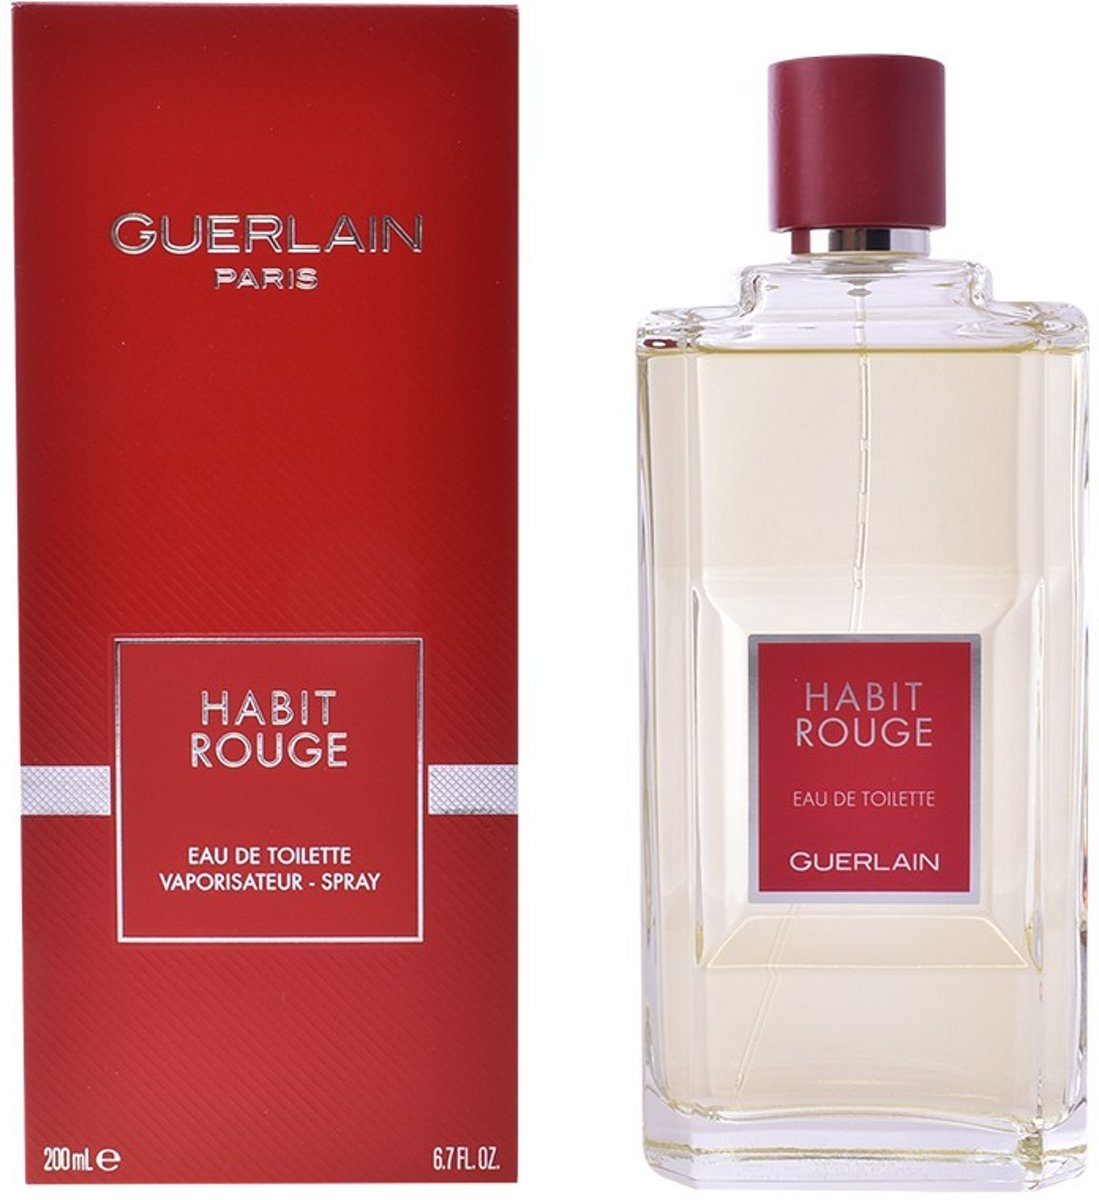 MULTI BUNDEL 2 stuks HABIT ROUGE Eau de Toilette Spray 200 ml